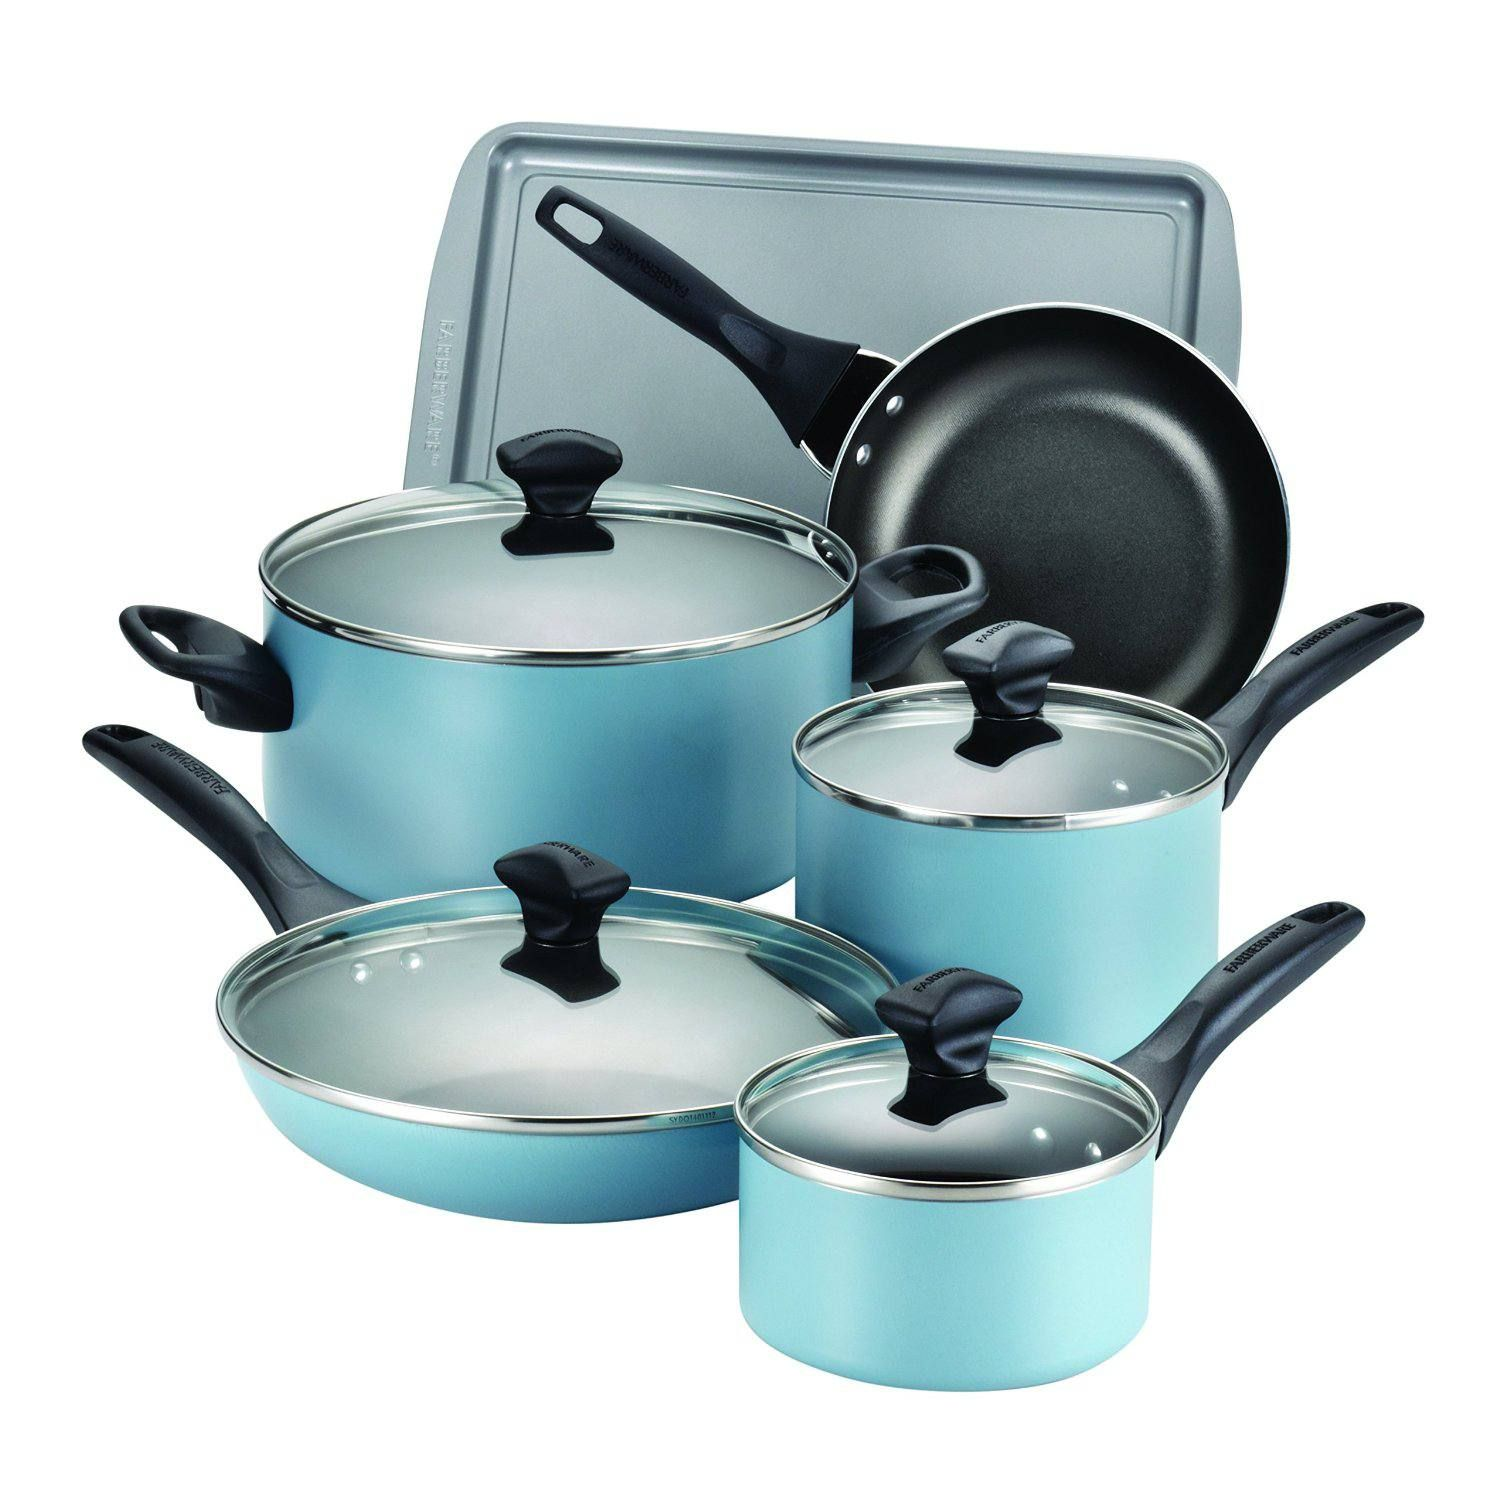 Best Non Stick Cookware Sets Cookware Set Stainless Steel Nonstick Cookware Pots And Pans Sets